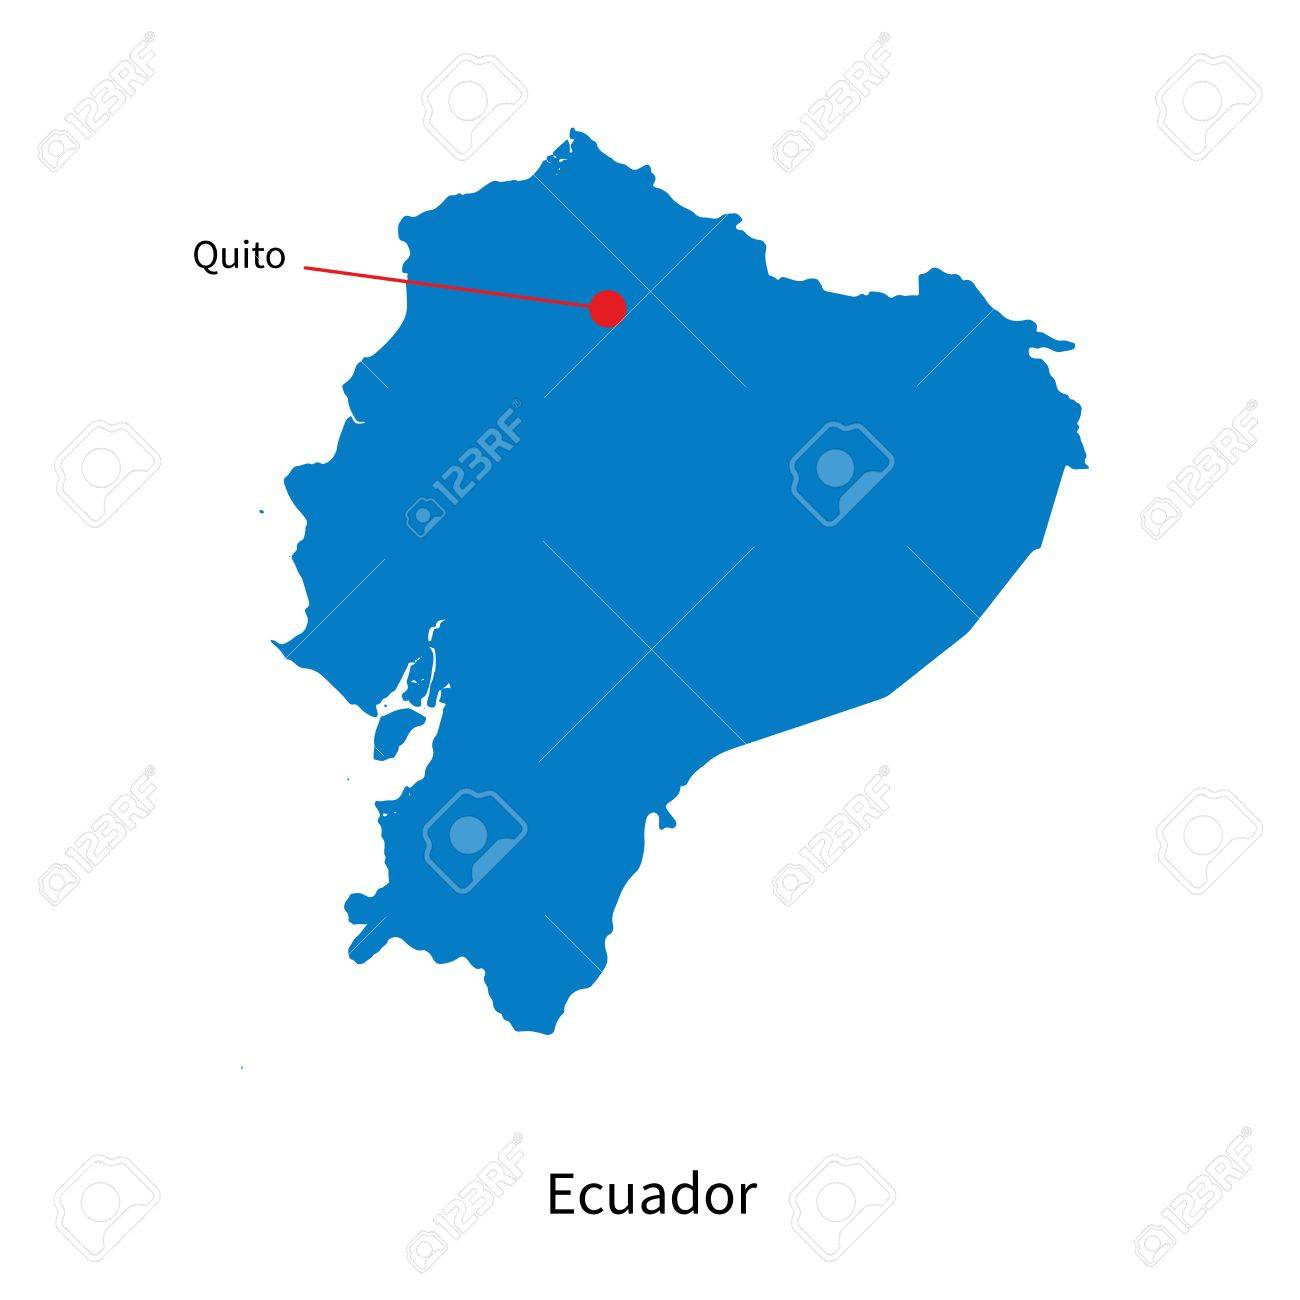 Ecuador Vector Map Detailed Vector Map of Ecuador